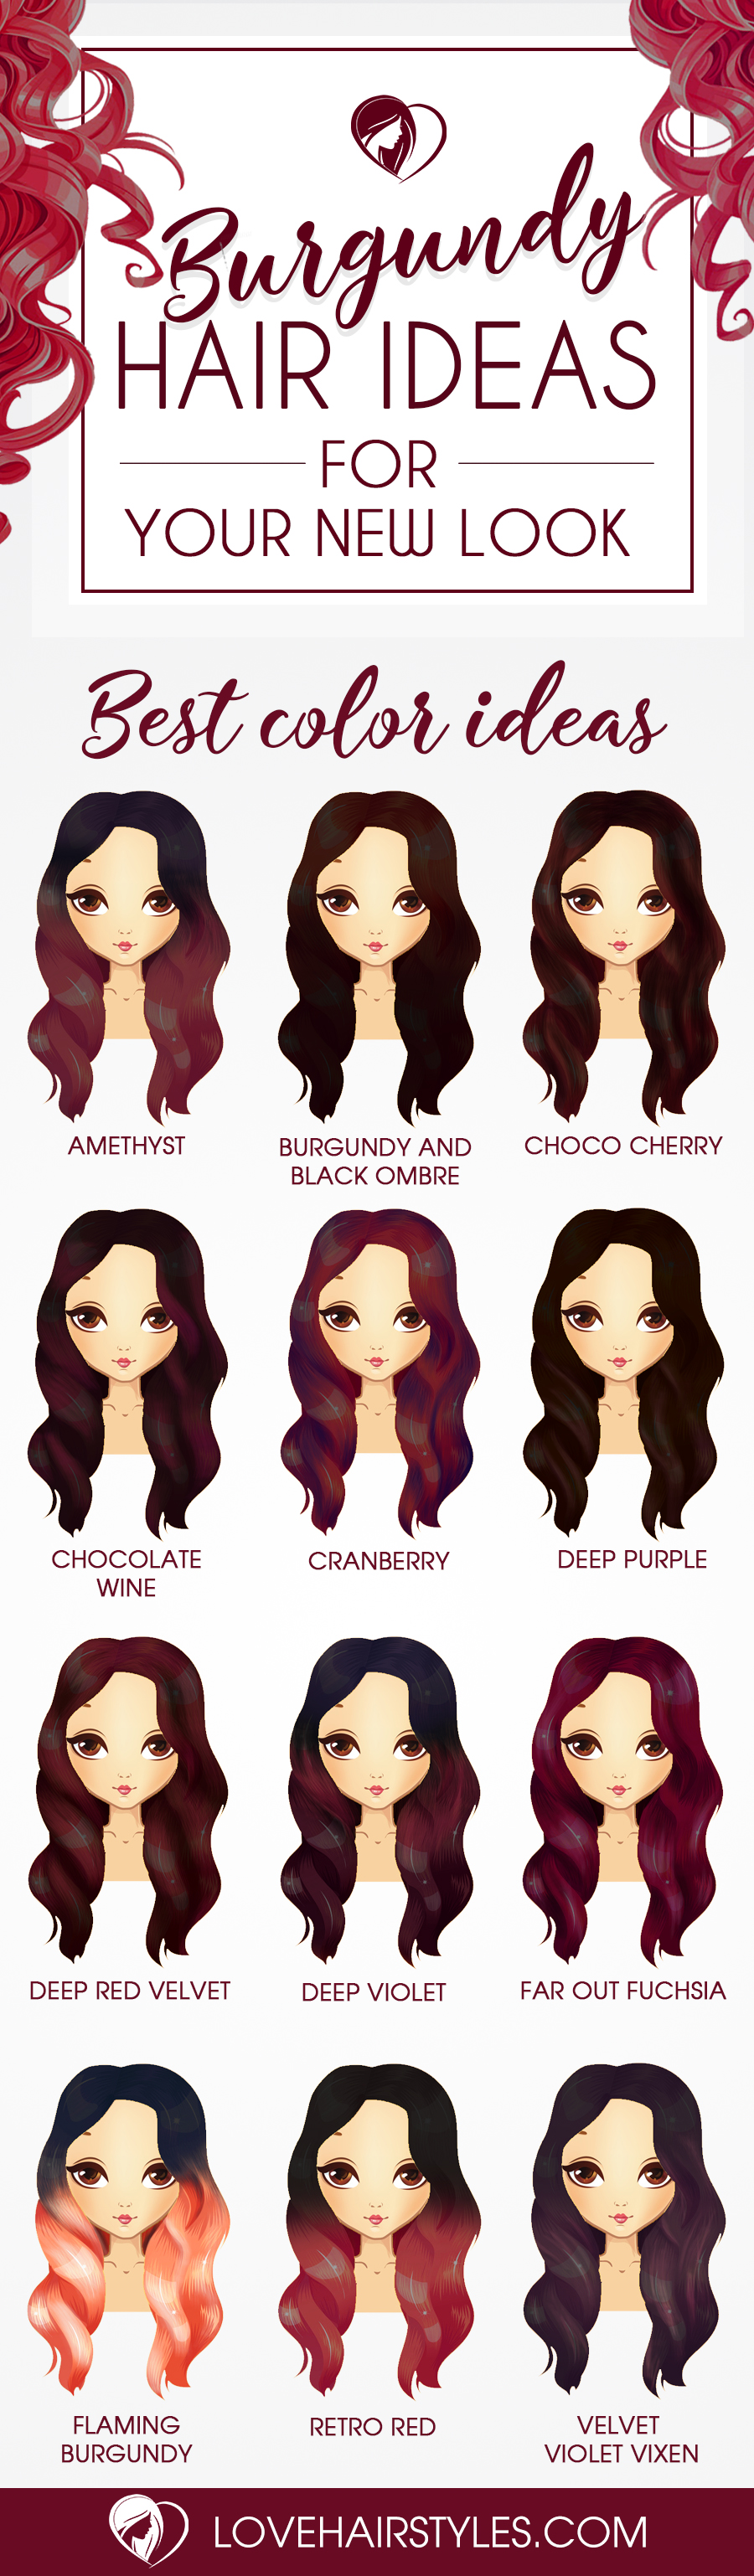 Sultry Shades of Burgundy Hair